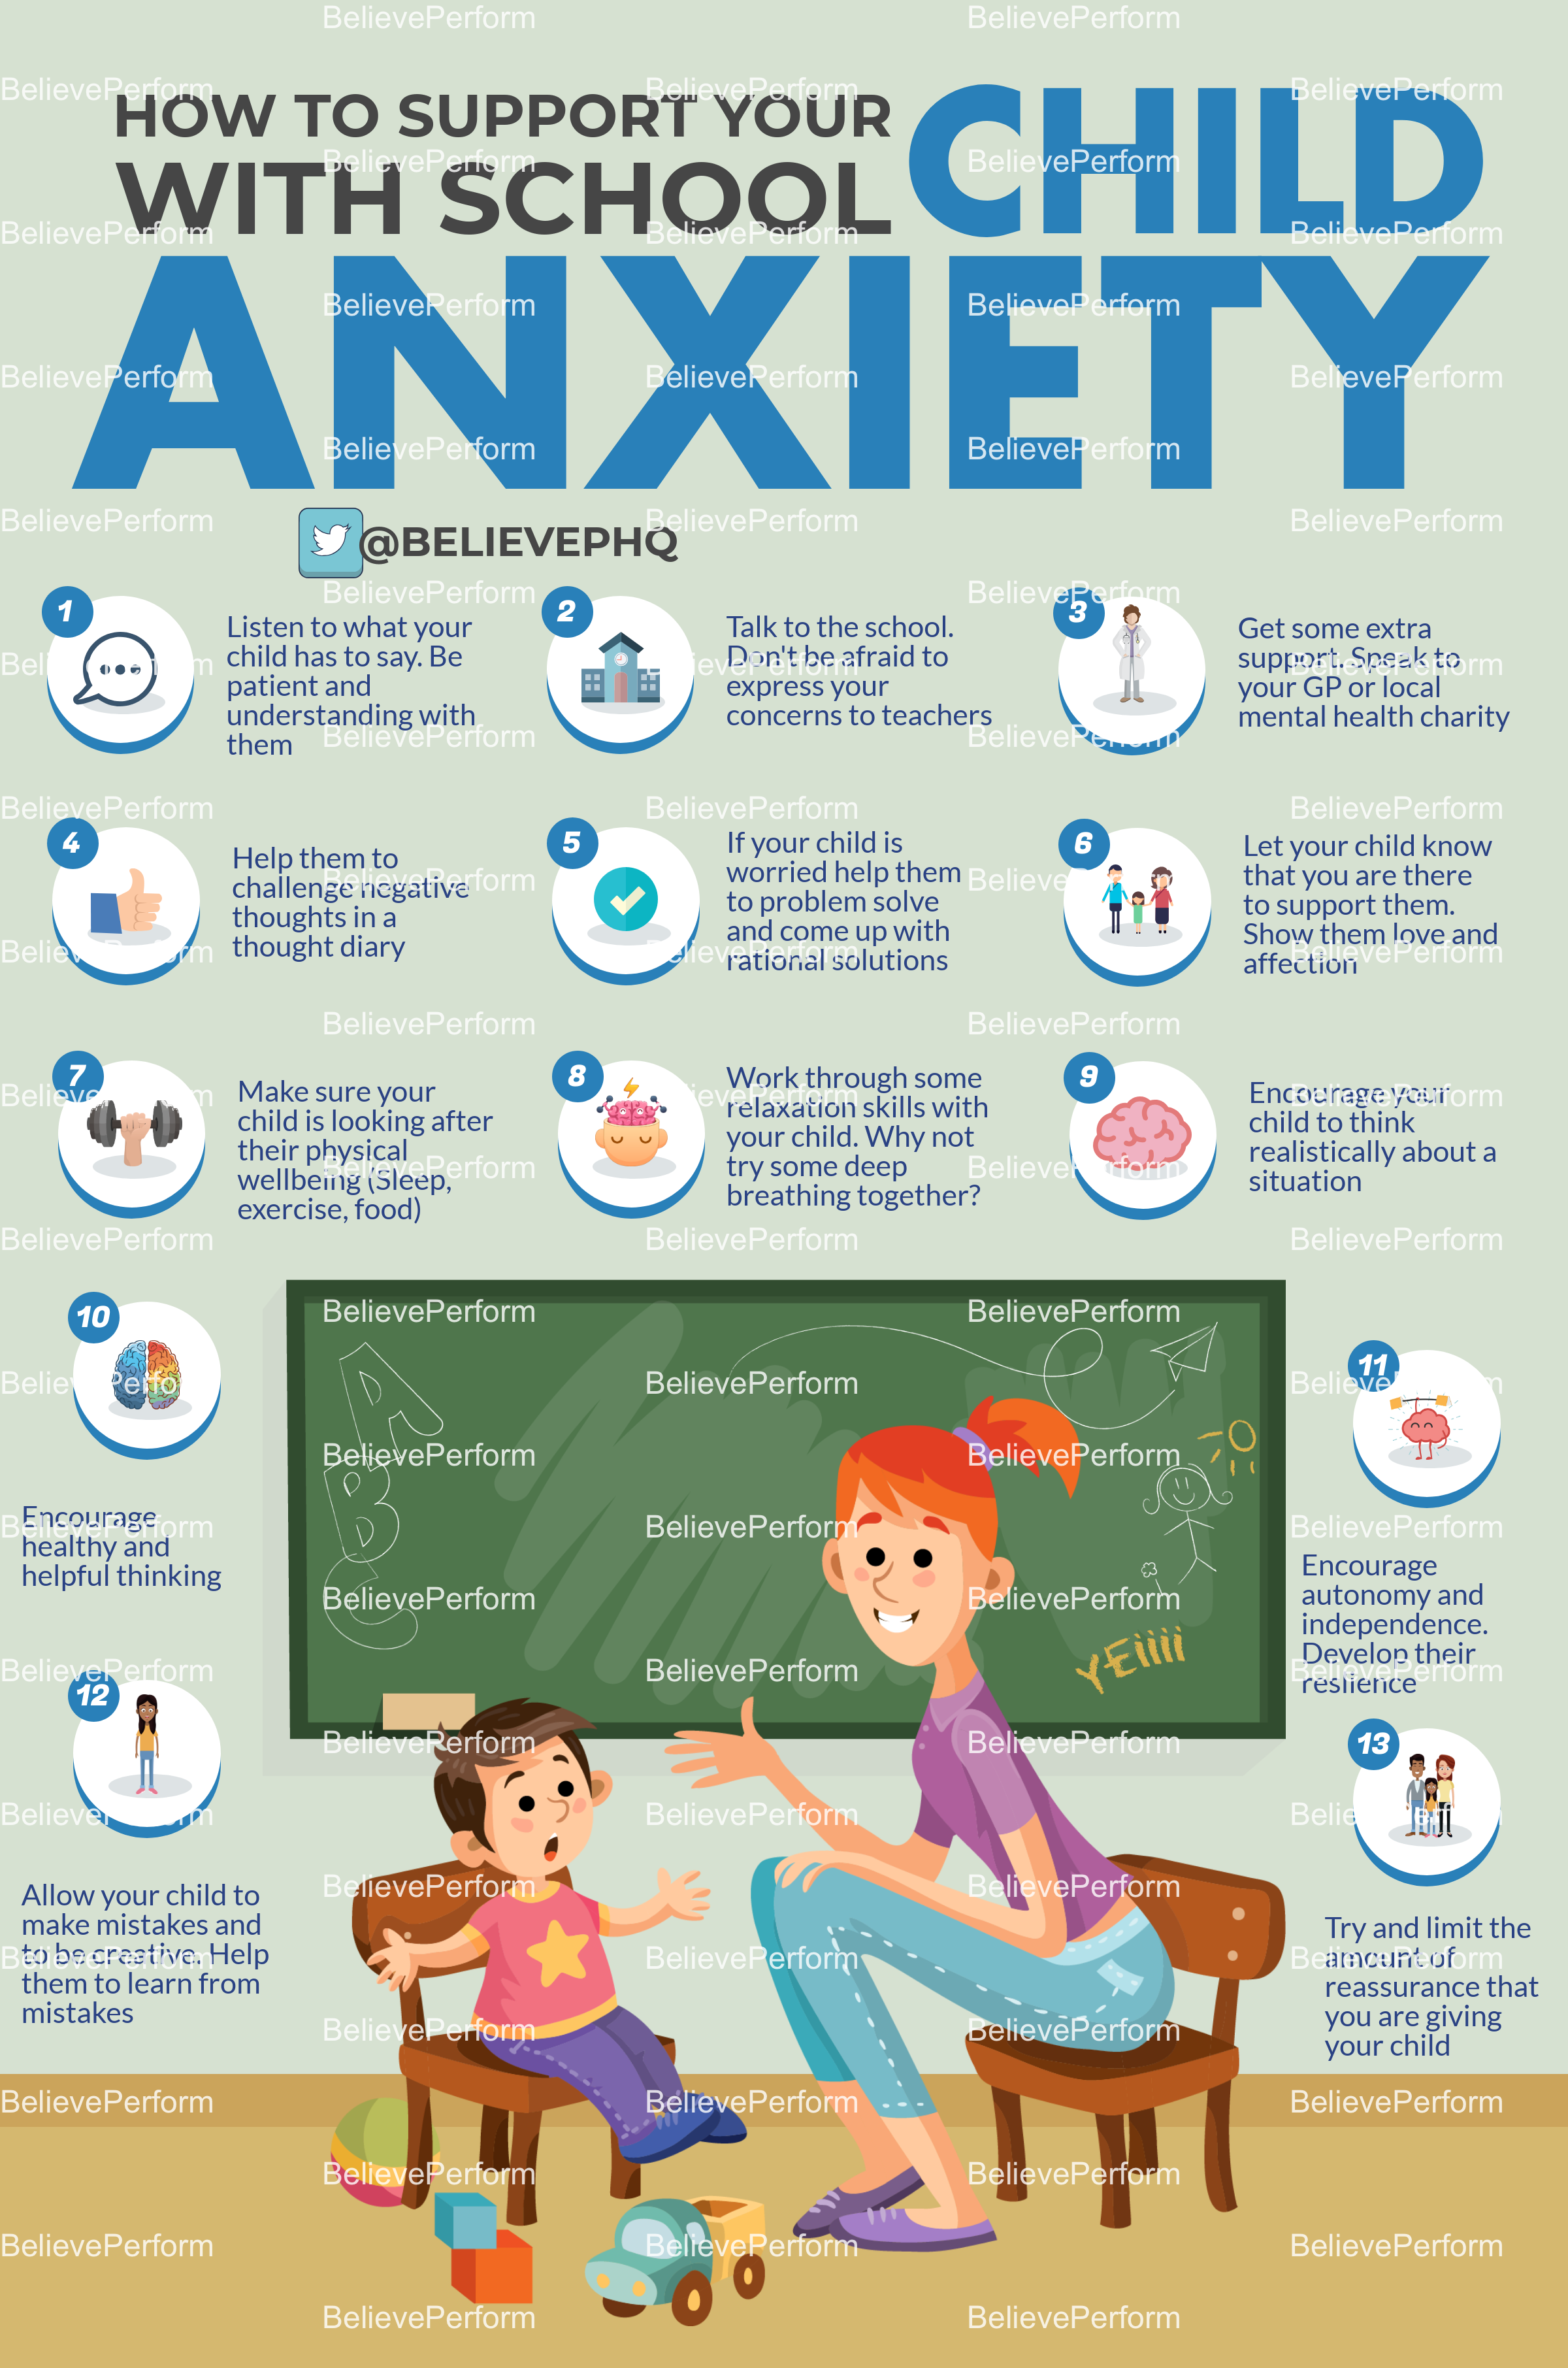 How to support your child with school anxiety